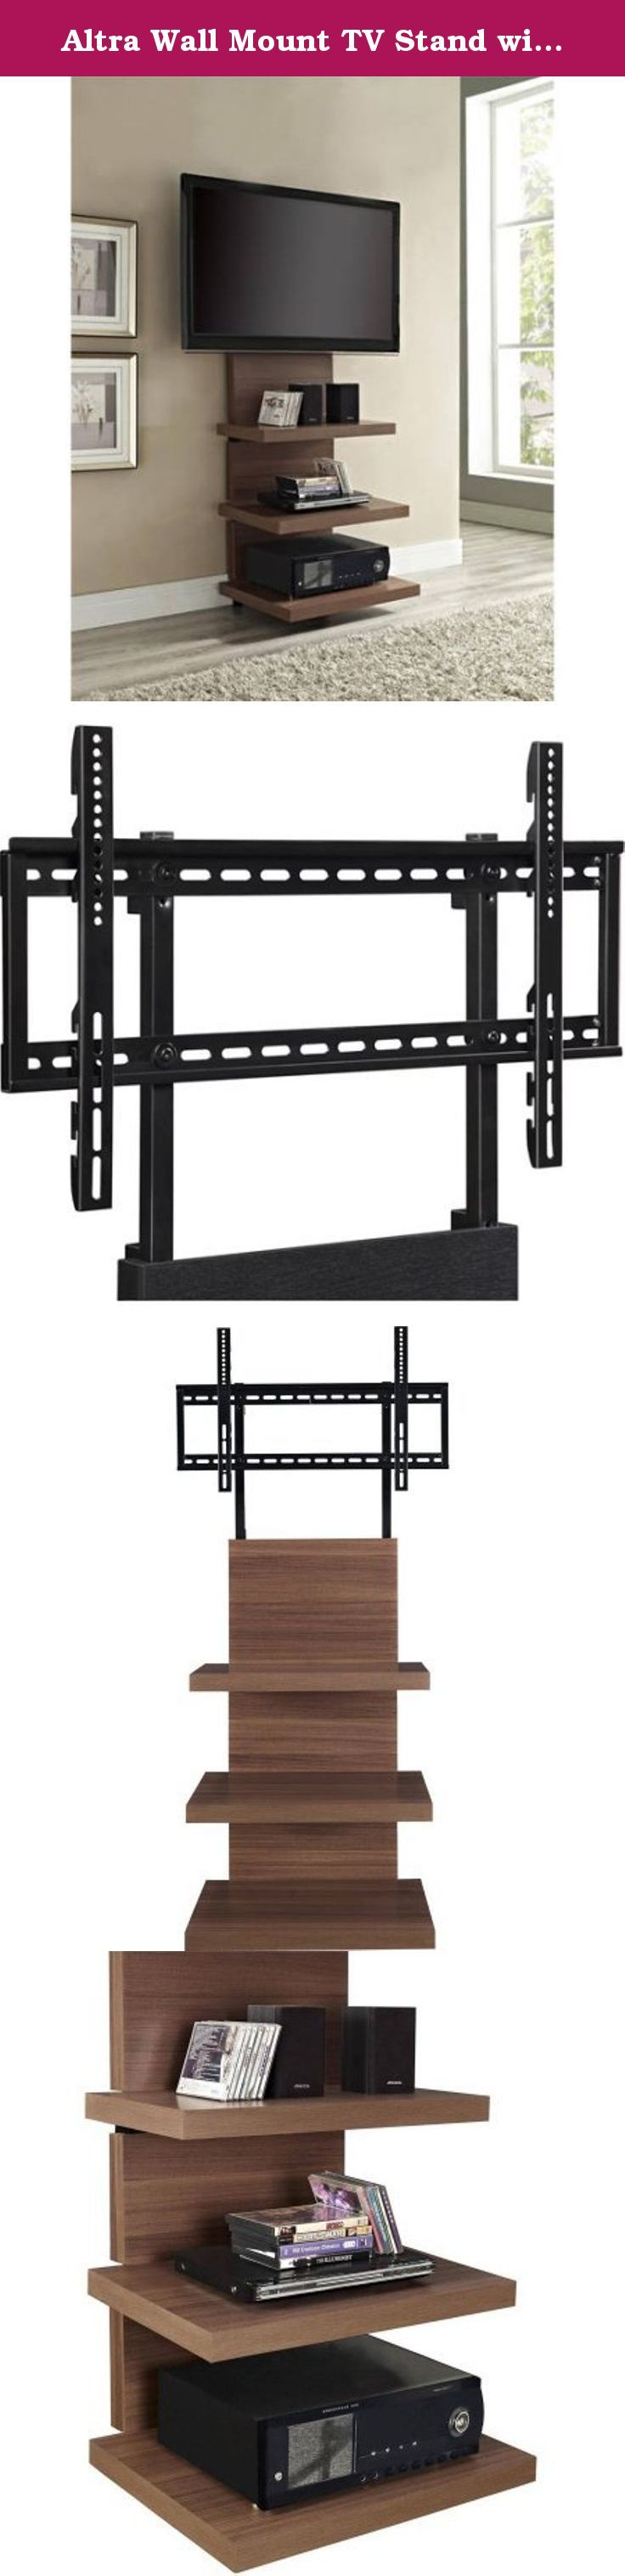 """Altra Wall Mount TV Stand with 3 Shelves, for TVs up to 60"""", 1186096, Walnut. The Altra Wall Mount TV Stand with 3 Shelves for TVs up to 60"""" is convenient, stylish and space saving. It is not only very simple to put together, it also lets you create a wire management solution all in one. There's no need to buy a mount and then pay more money for a TV stand because this design will do it all. The wall mount TV stand with shelves features a sturdy metal frame. It also has snap-on panels, so..."""